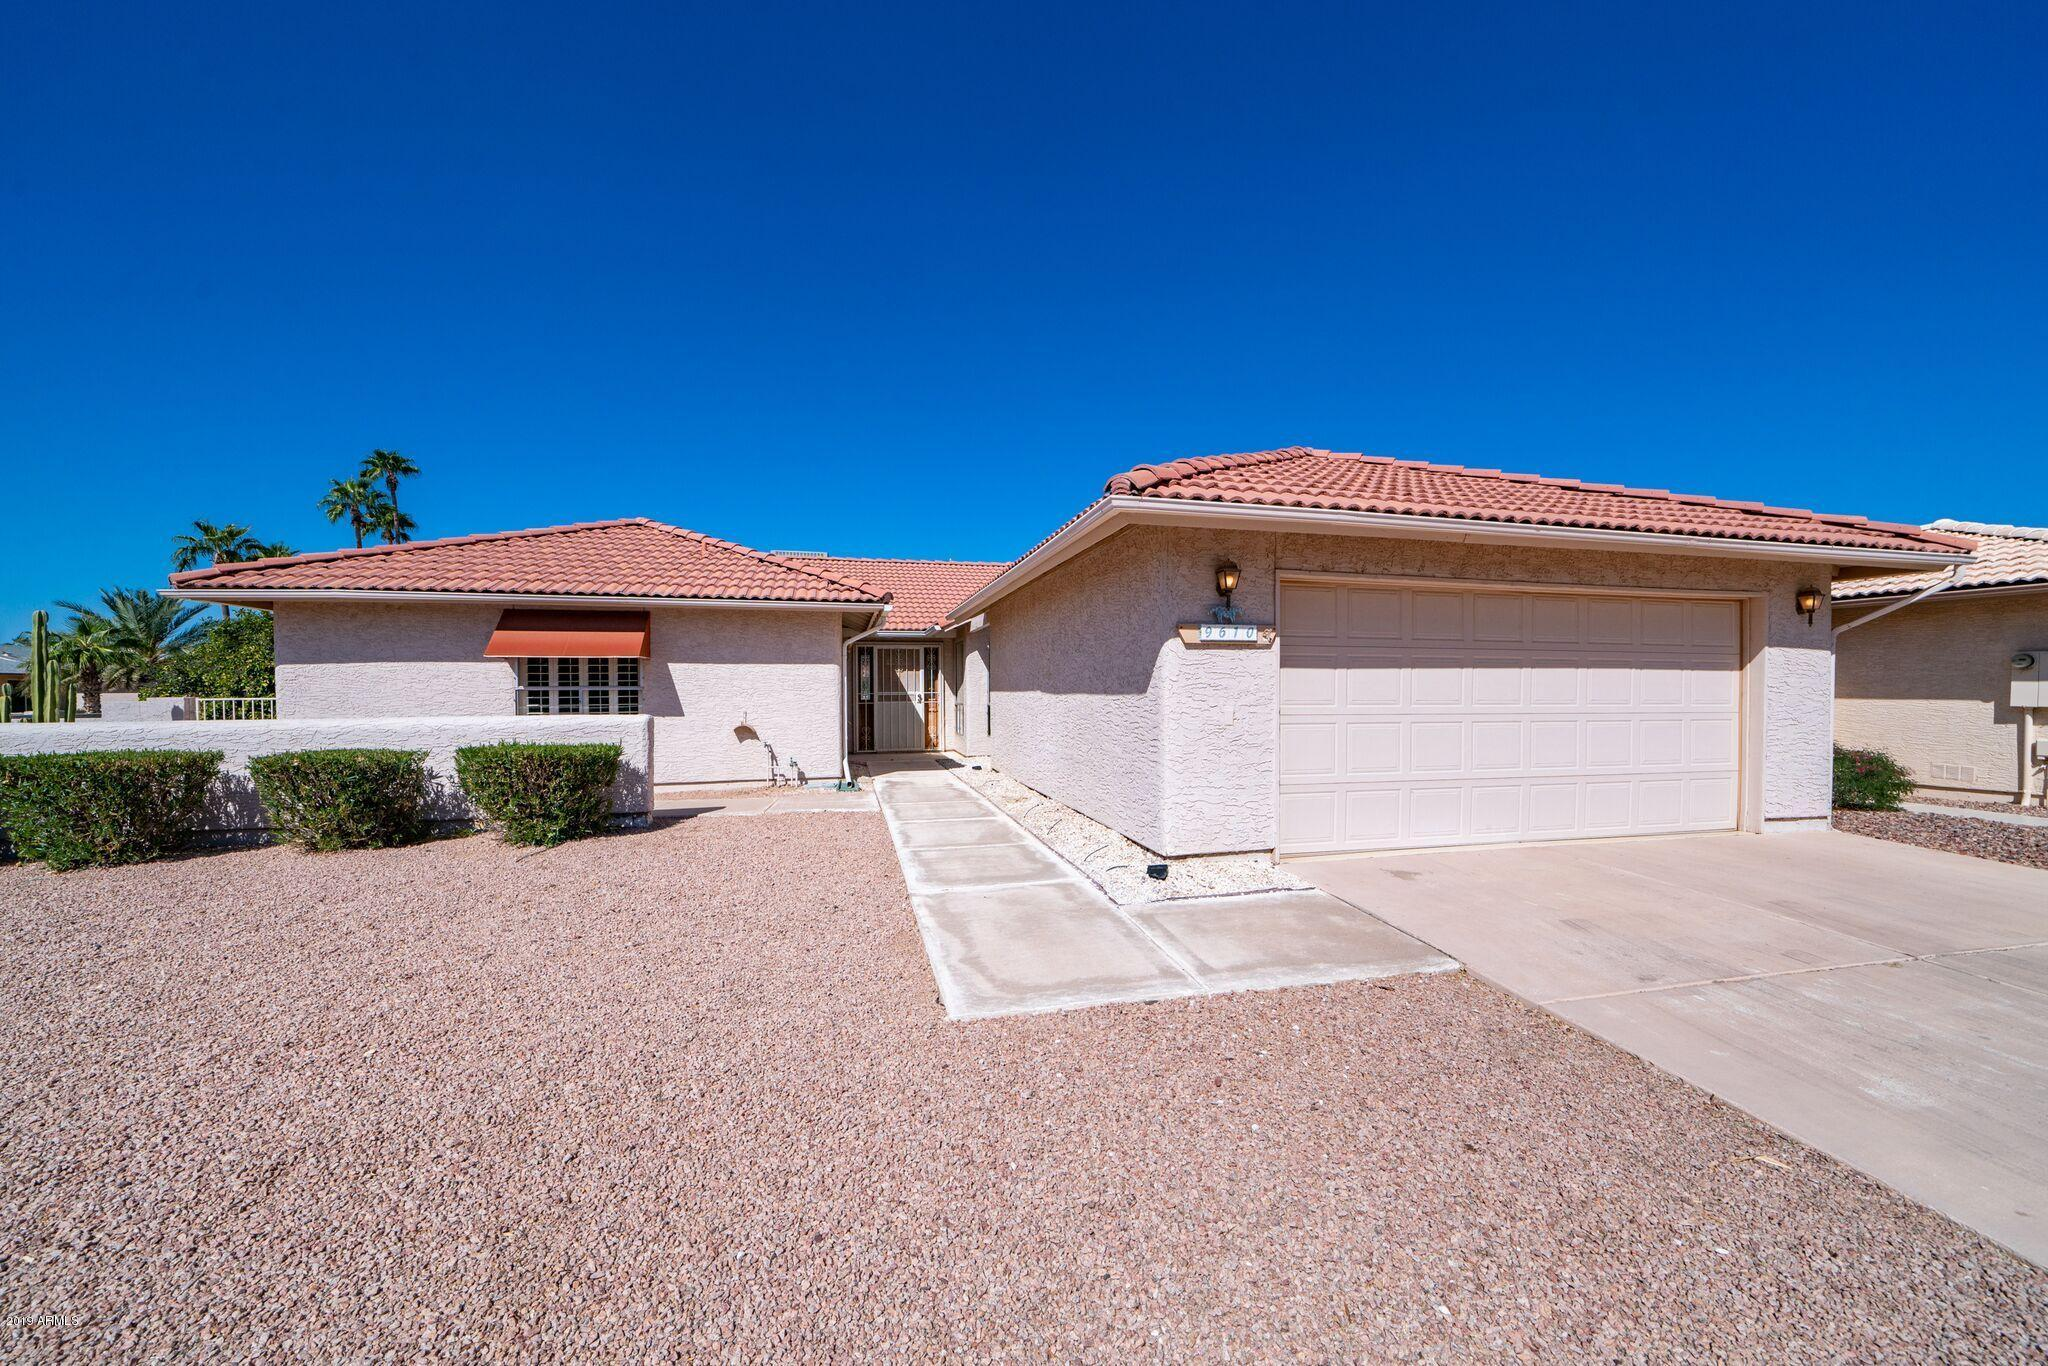 Photo for 9610 E Eddystone Court, Sun Lakes, AZ 85248 (MLS # 5990740)